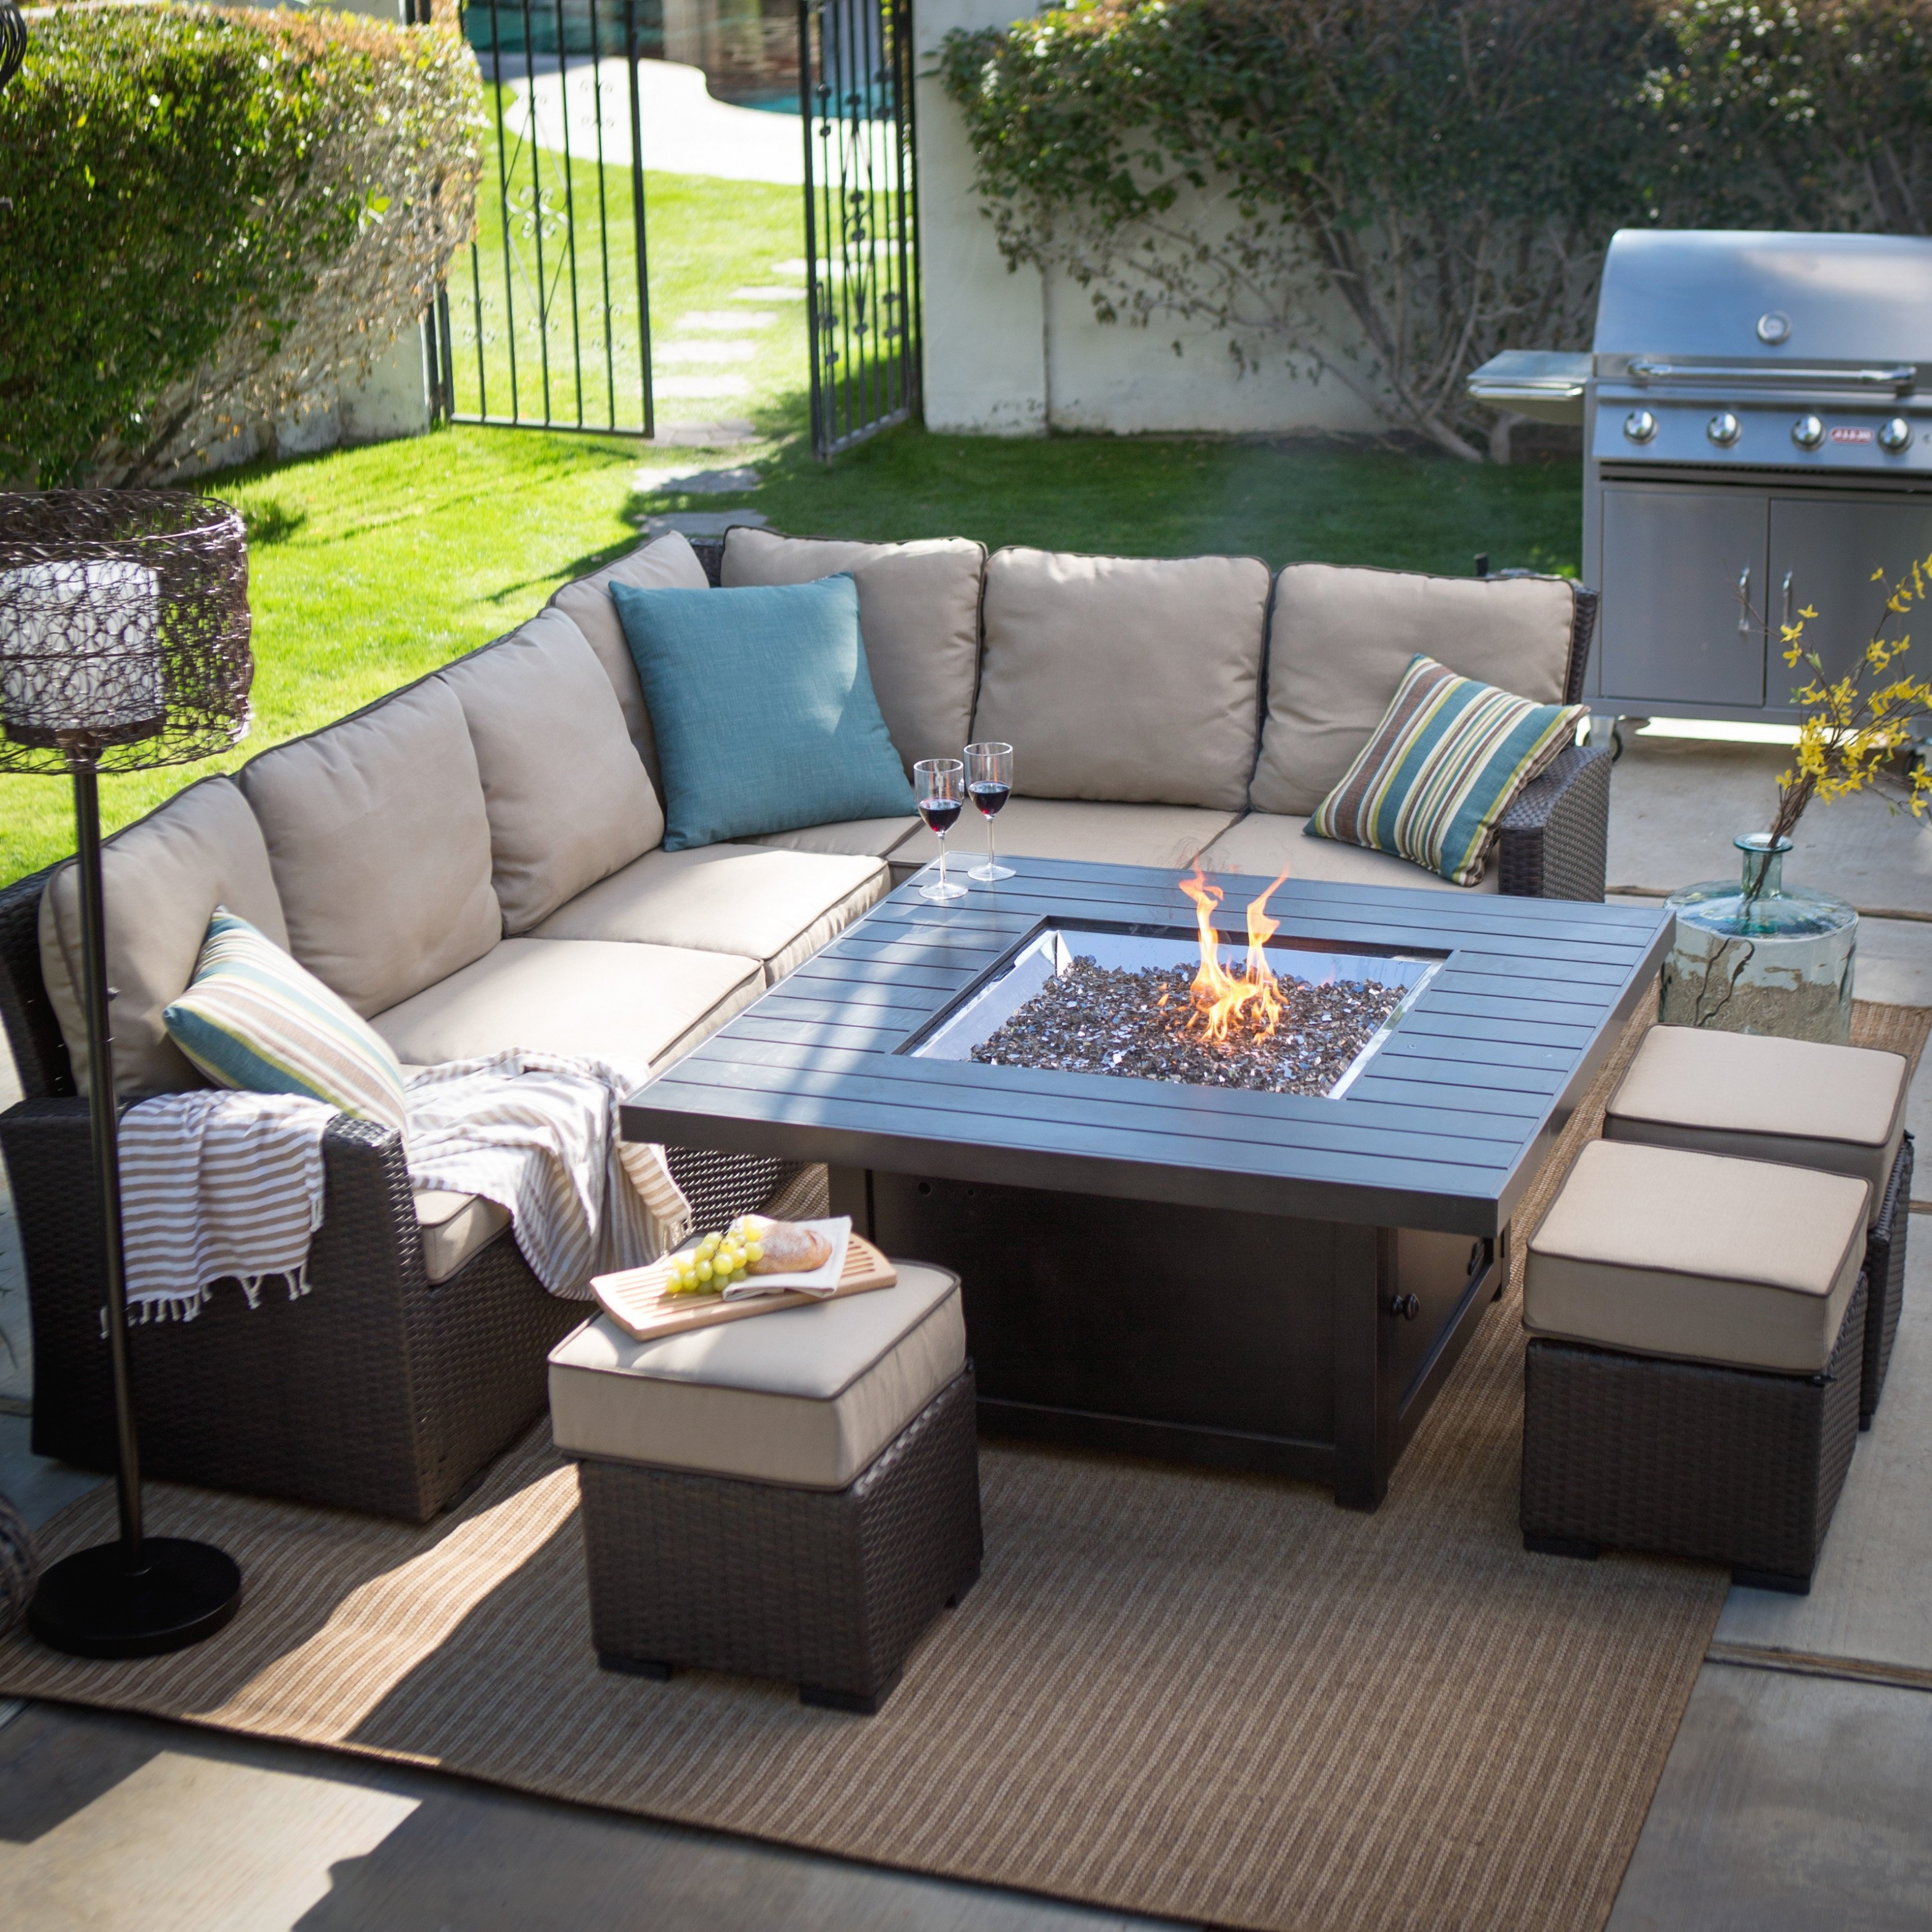 Patio Furniture Conversation Sets With Fire Pit Inside Current Revisited Fire Pit Conversation Sets Shrewd Patio Furniture Decor (View 10 of 20)